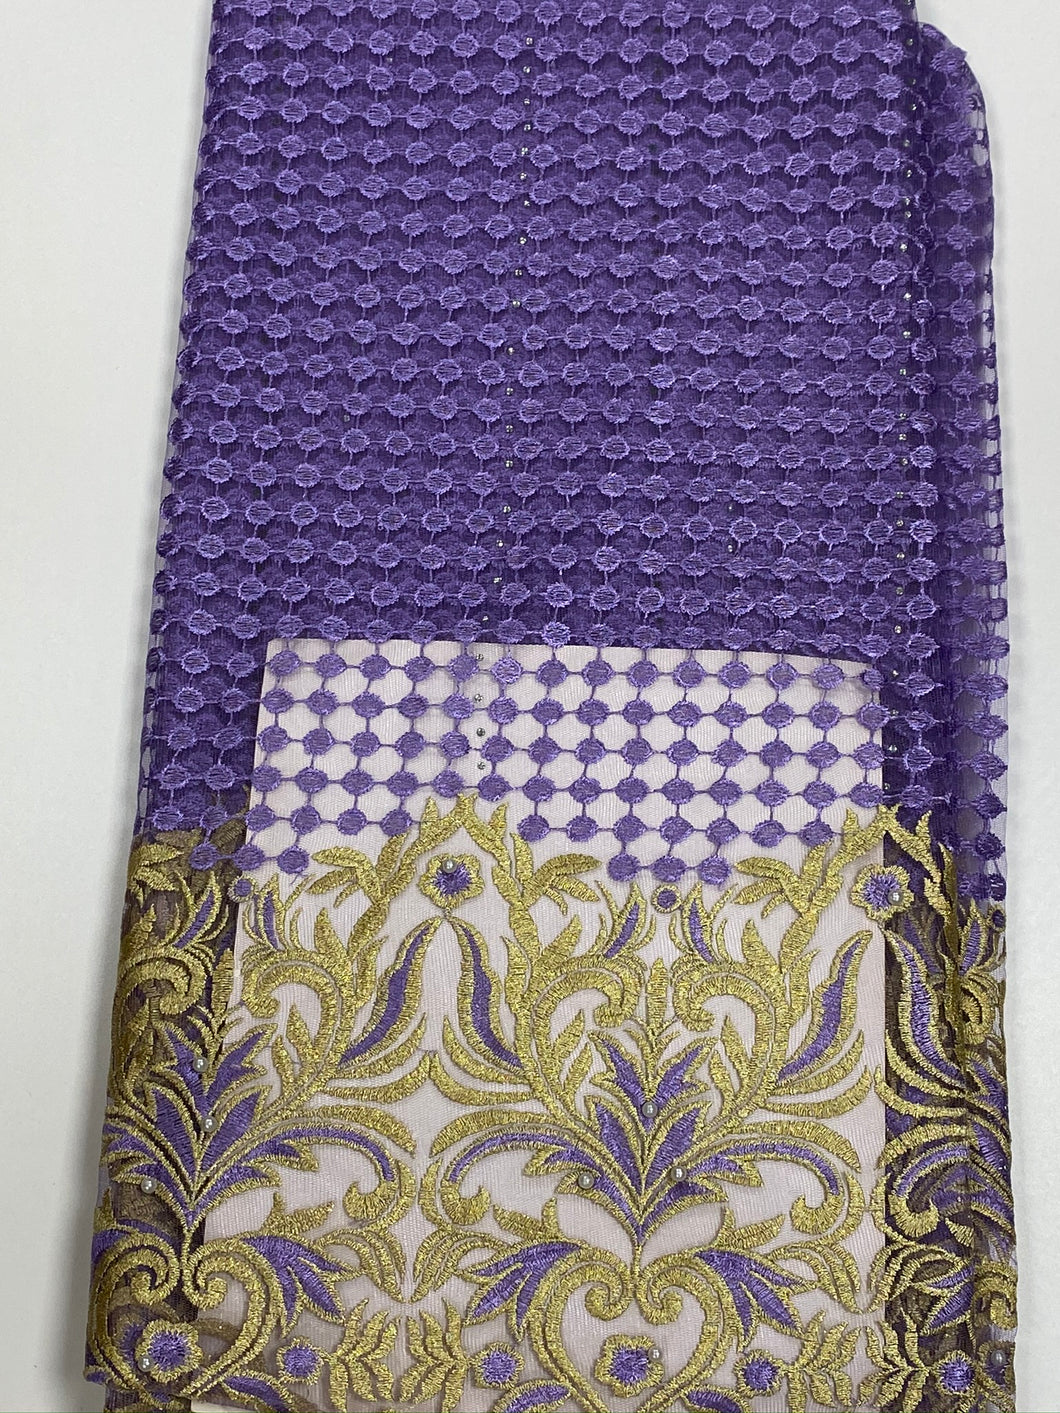 Lilac and Gold French Lace - 5 Yards